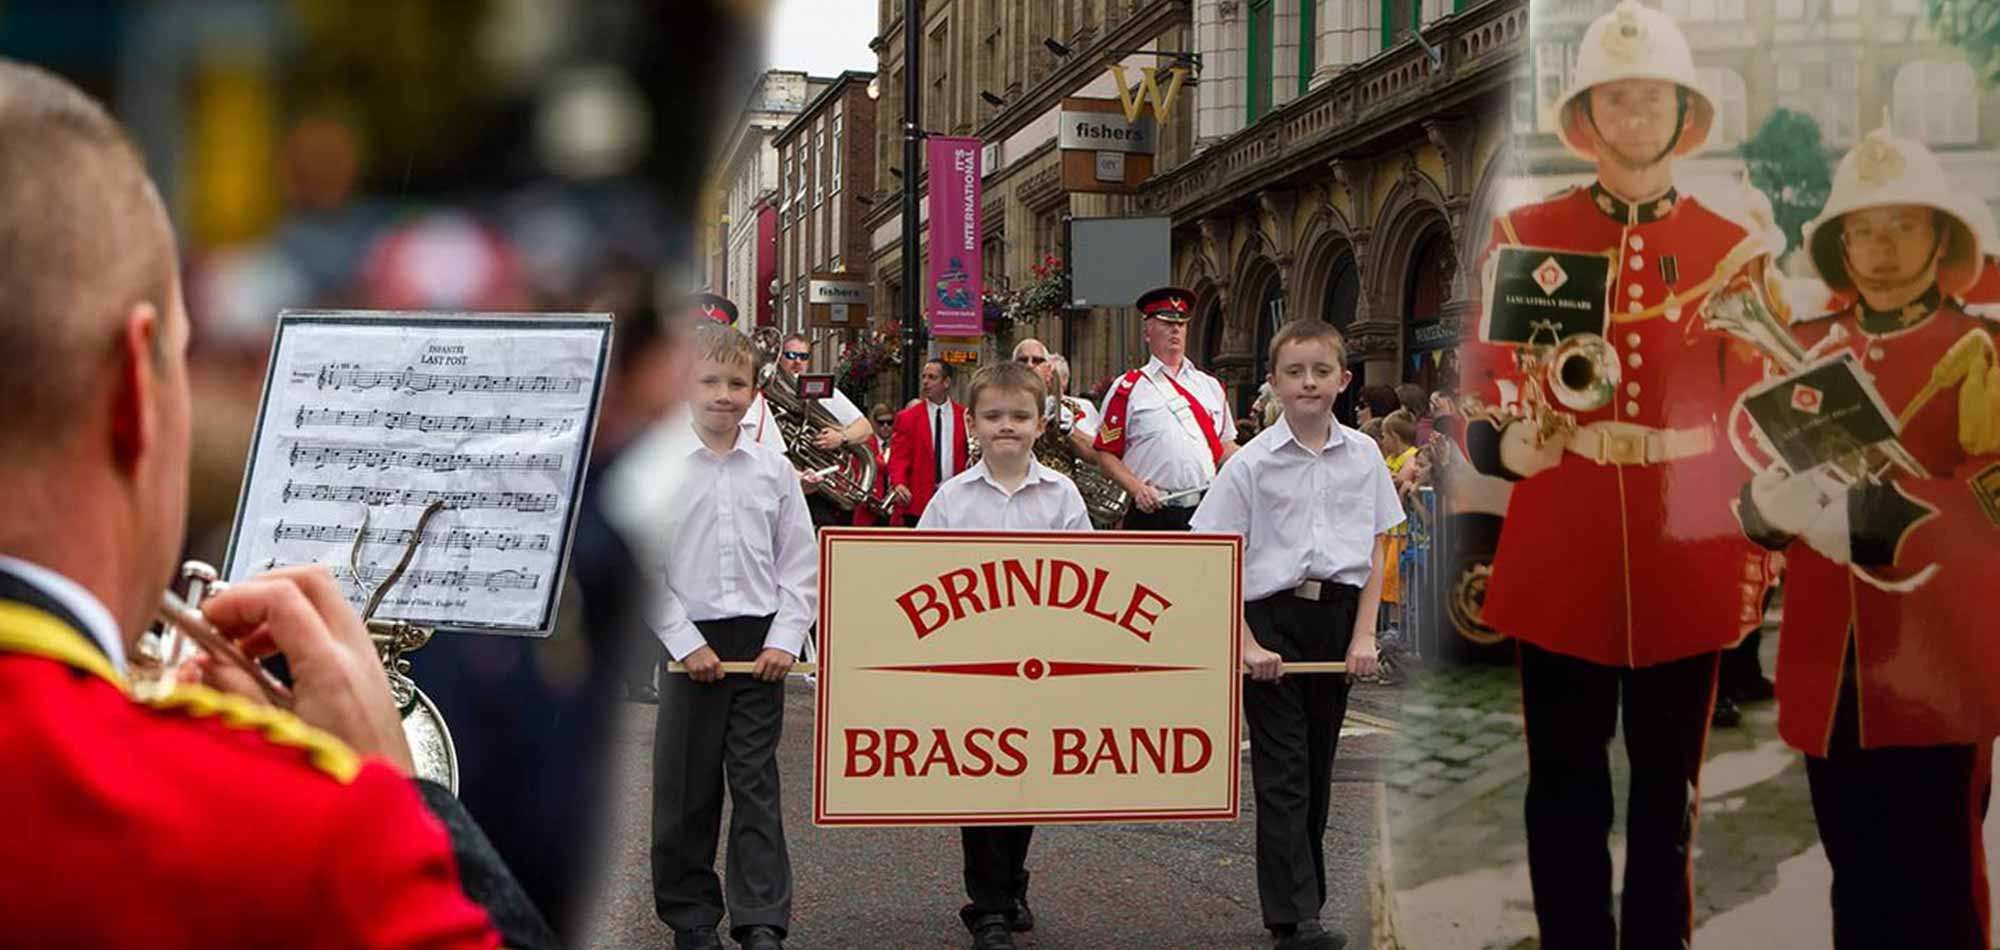 Brindle Brass Band